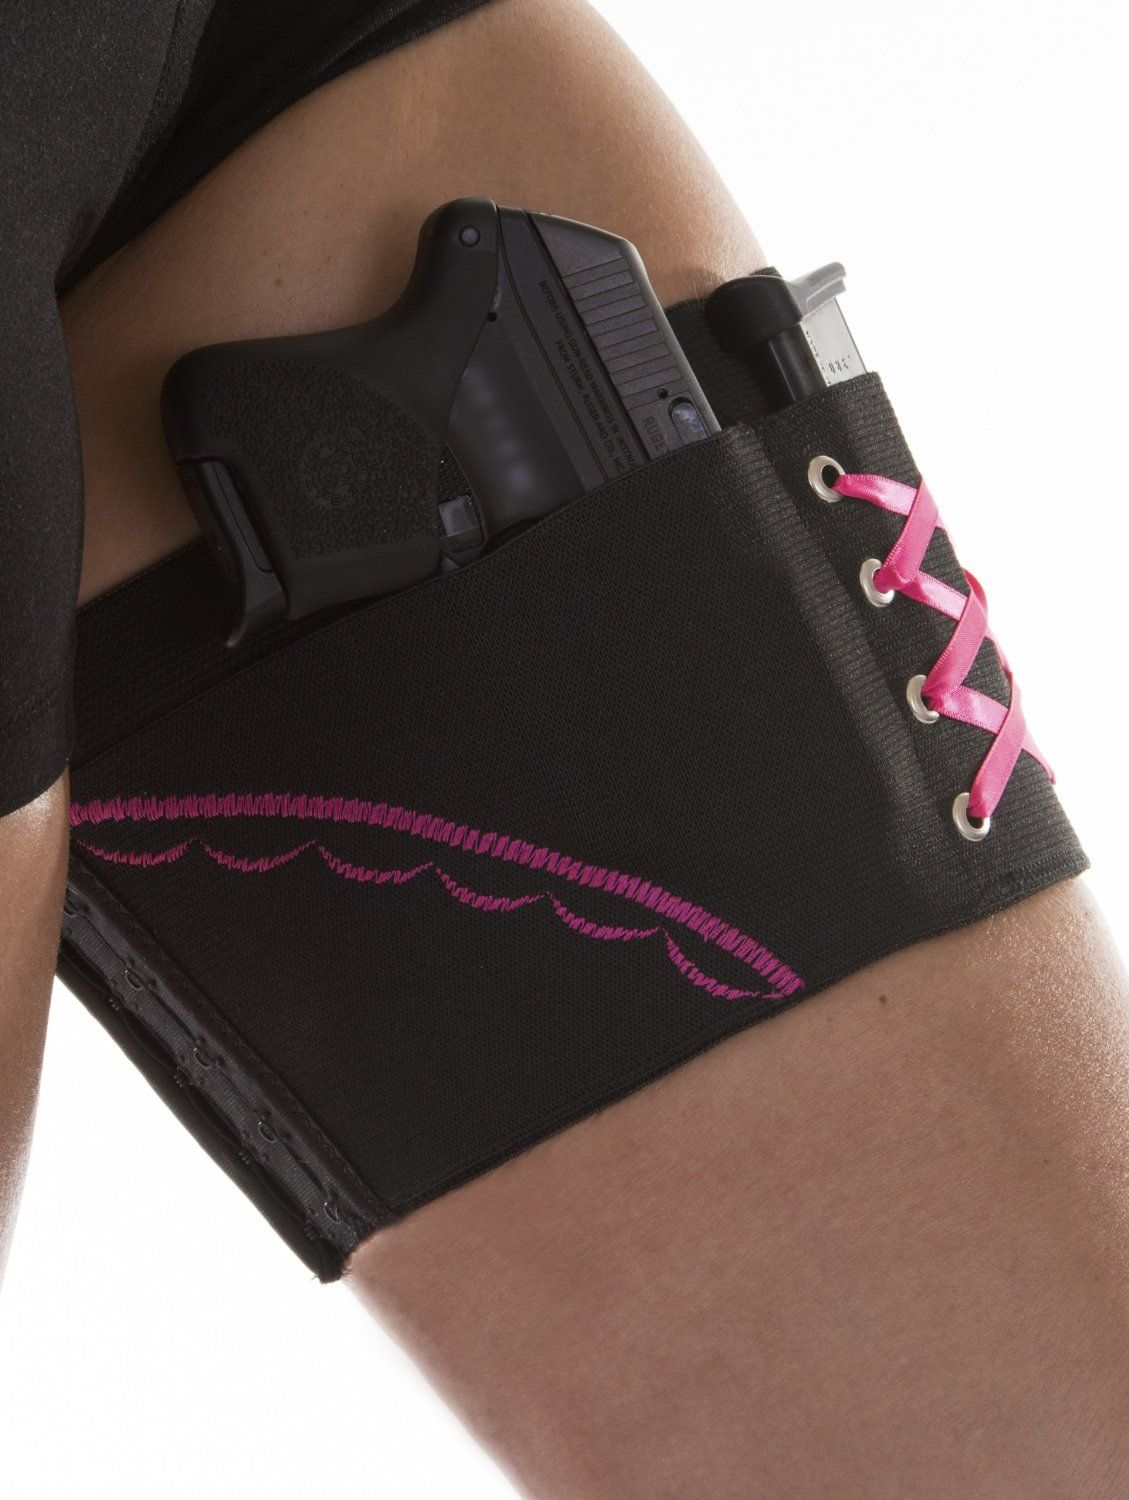 Concealed Carry for Women   Women's Concealed Carry Holsters